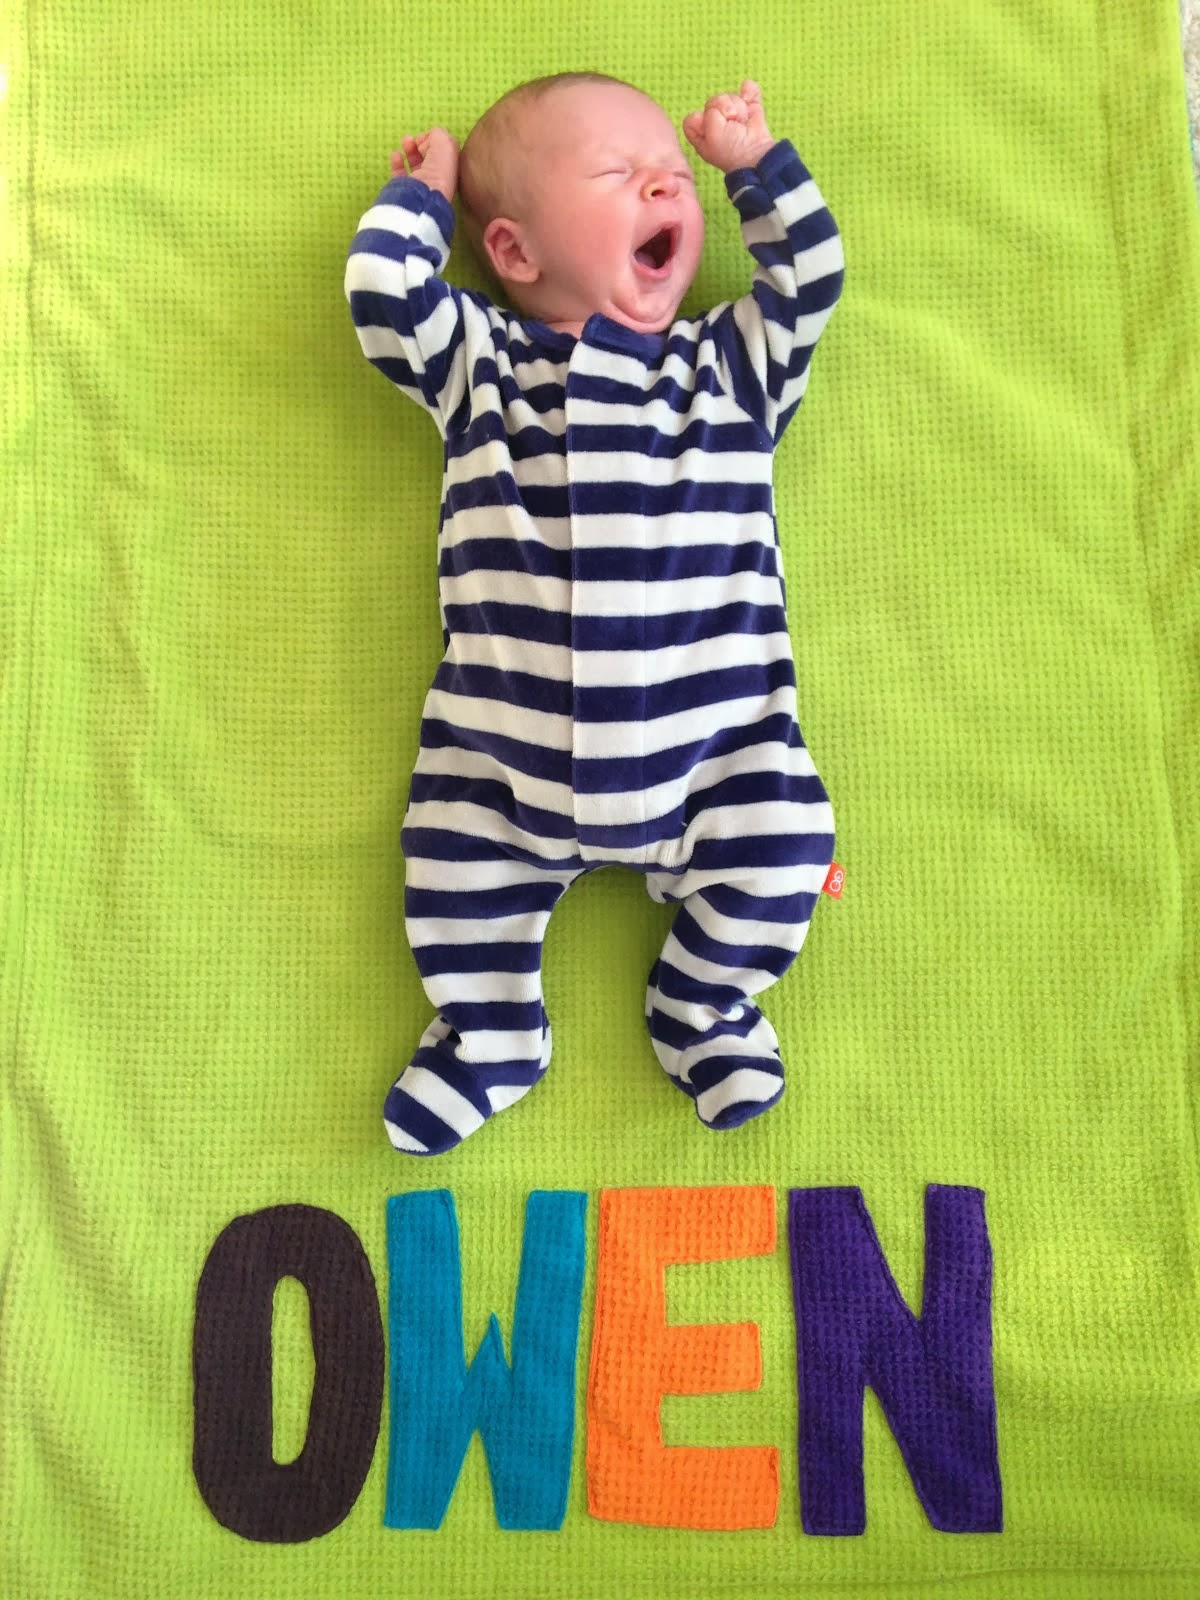 Owen (Grand Child No. 2)